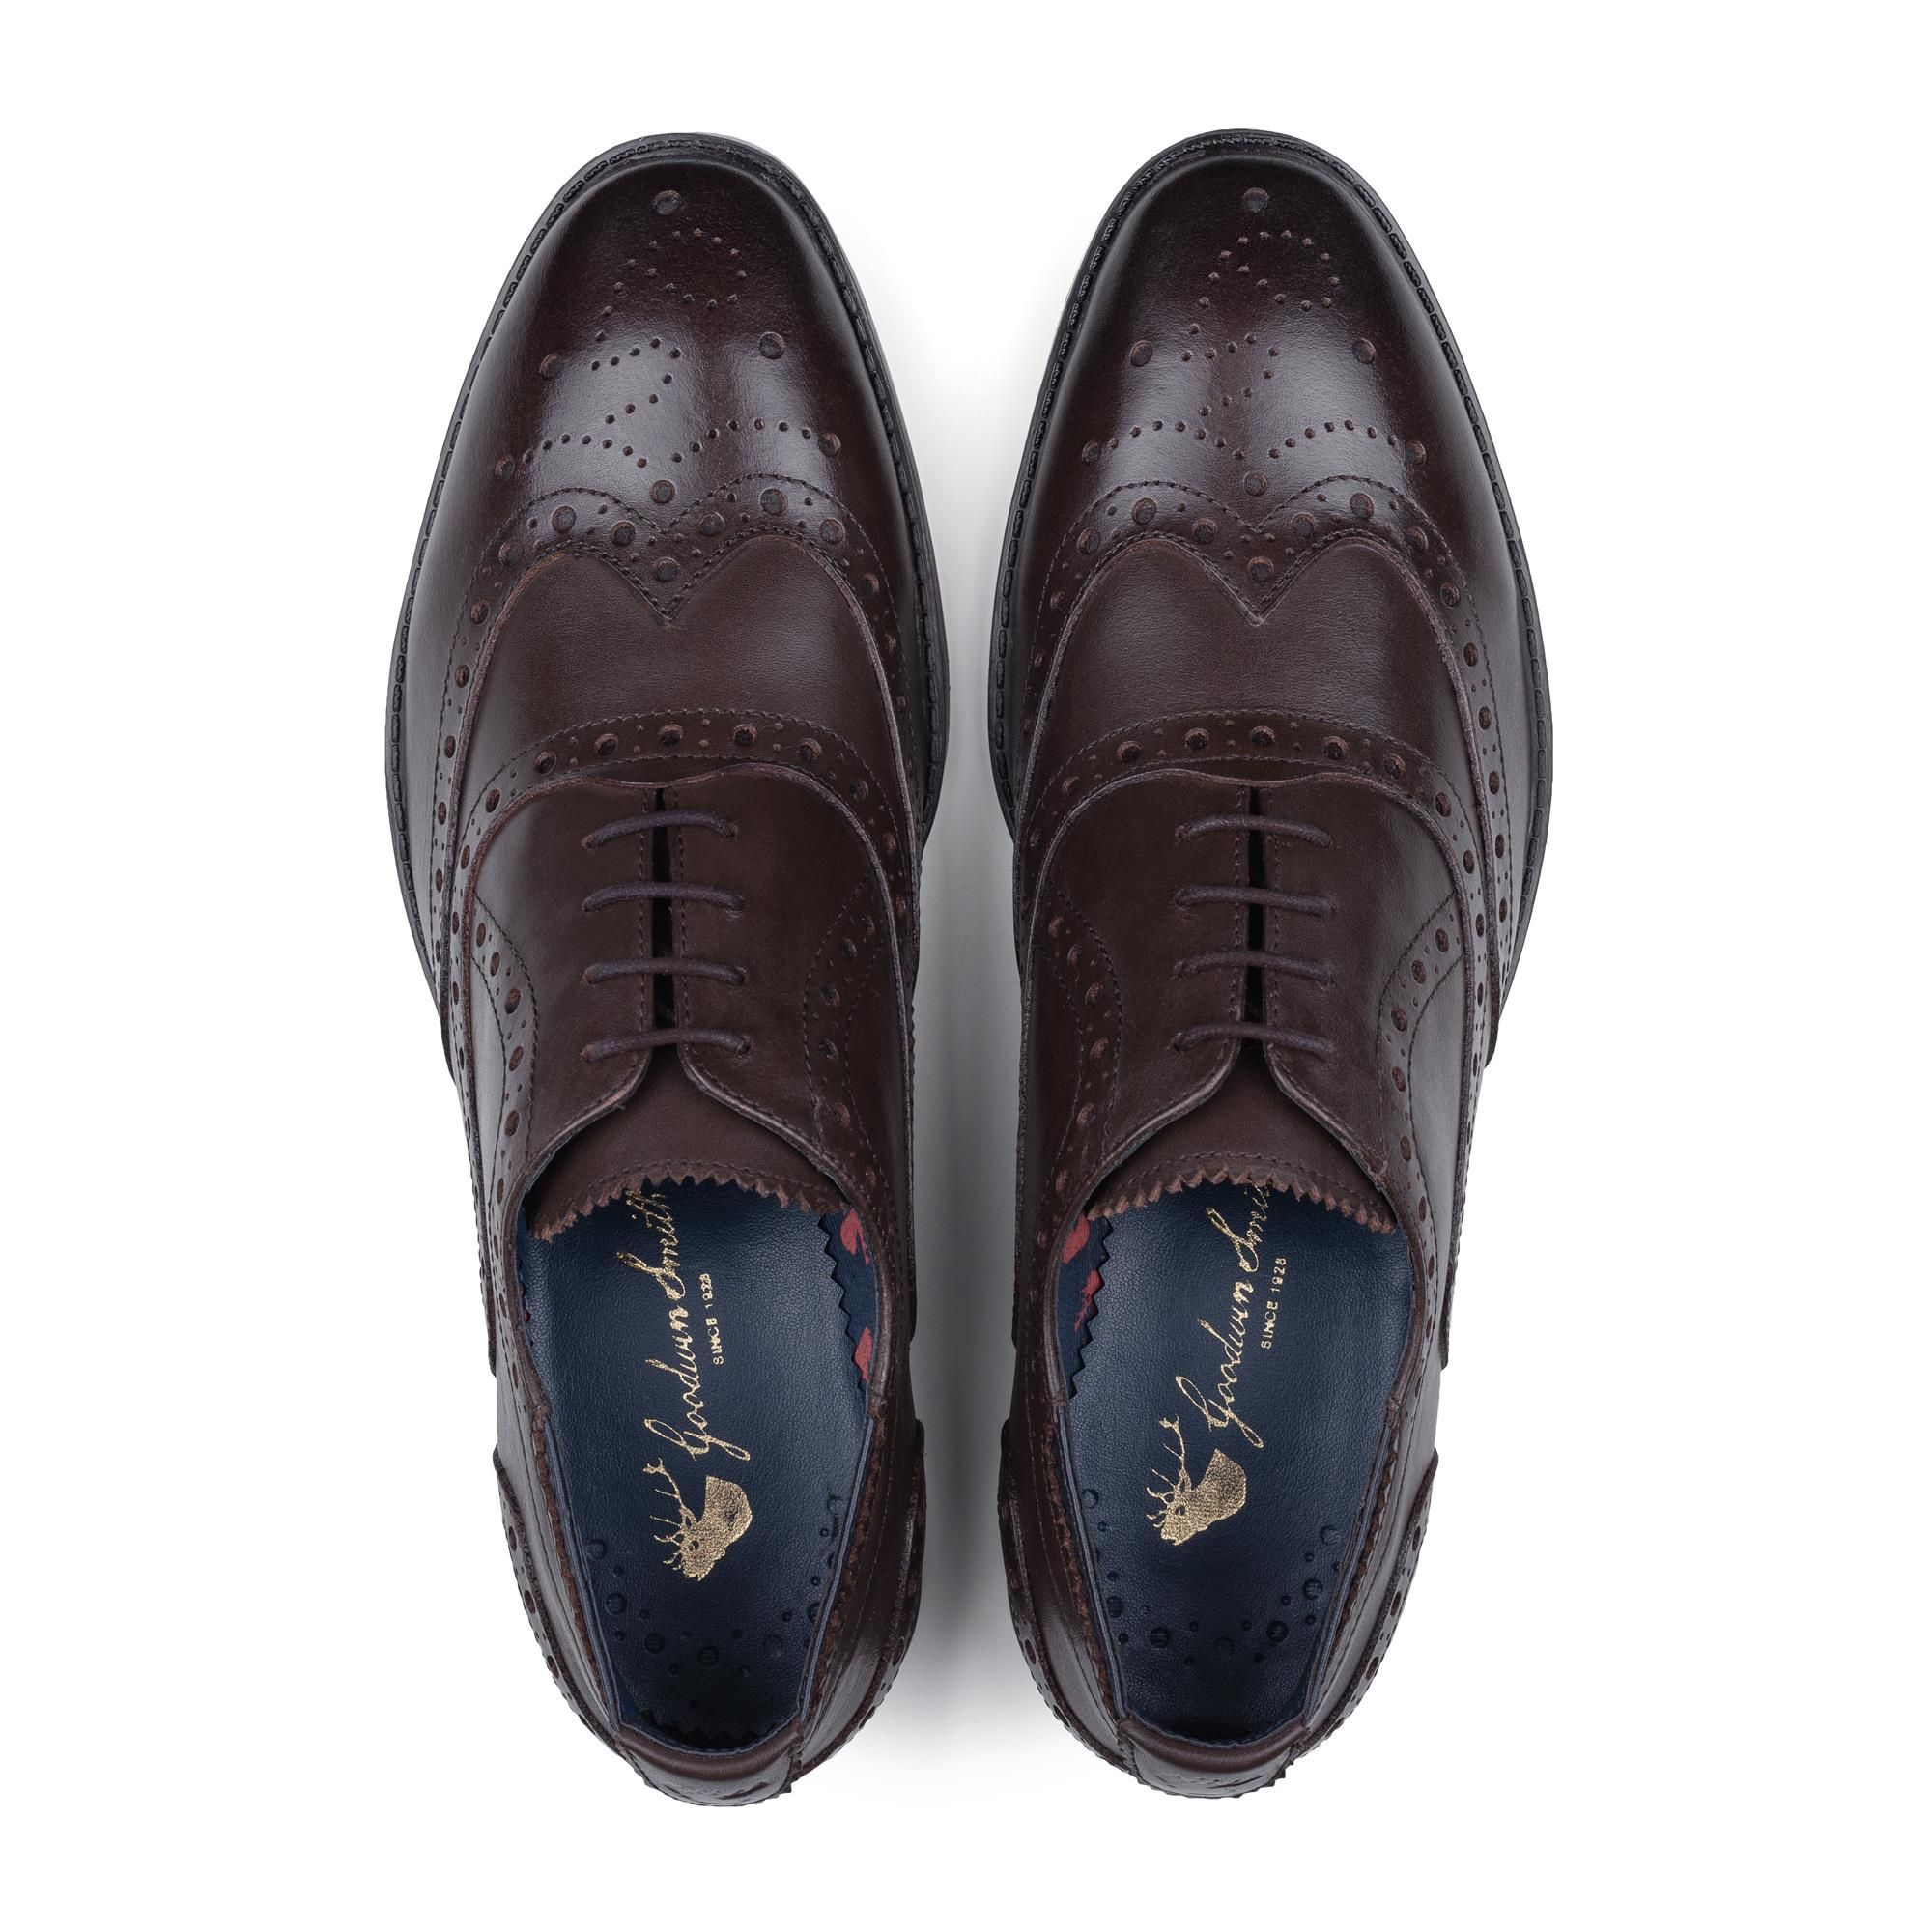 Goodwin Smith Mens Gs Oliver Brown Oxford Brogue